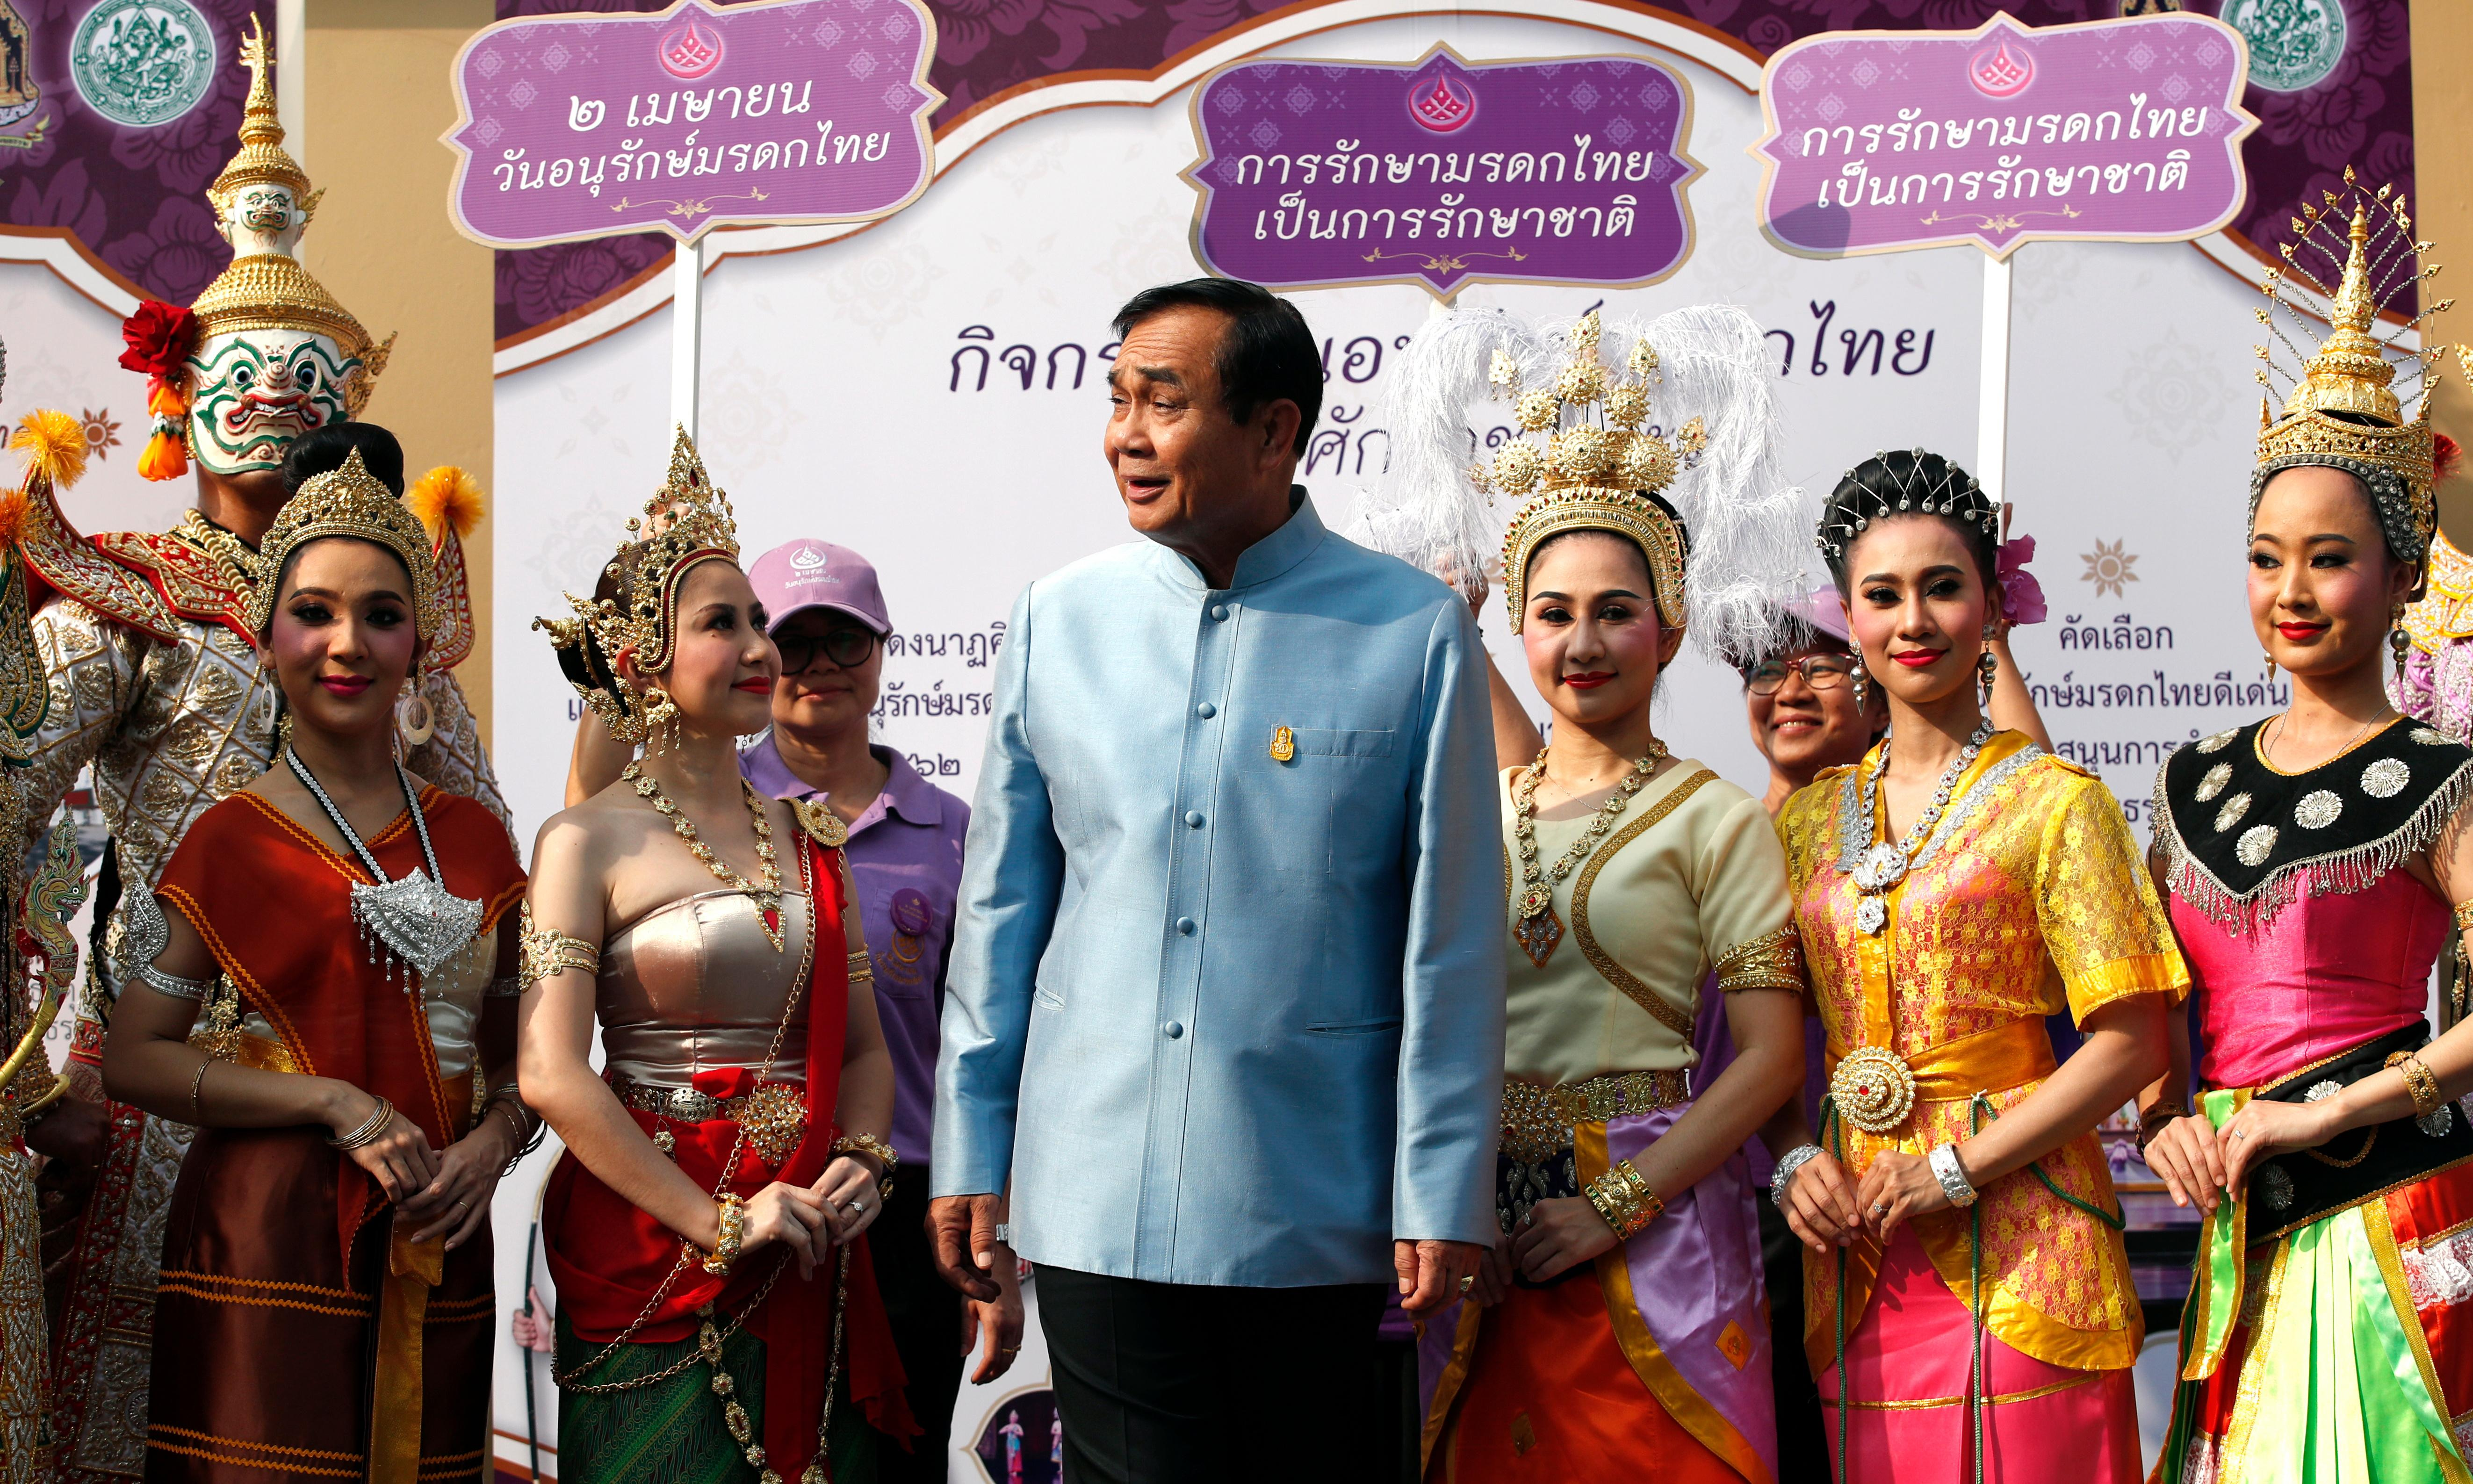 Thai election process 'deeply flawed', say independent observers